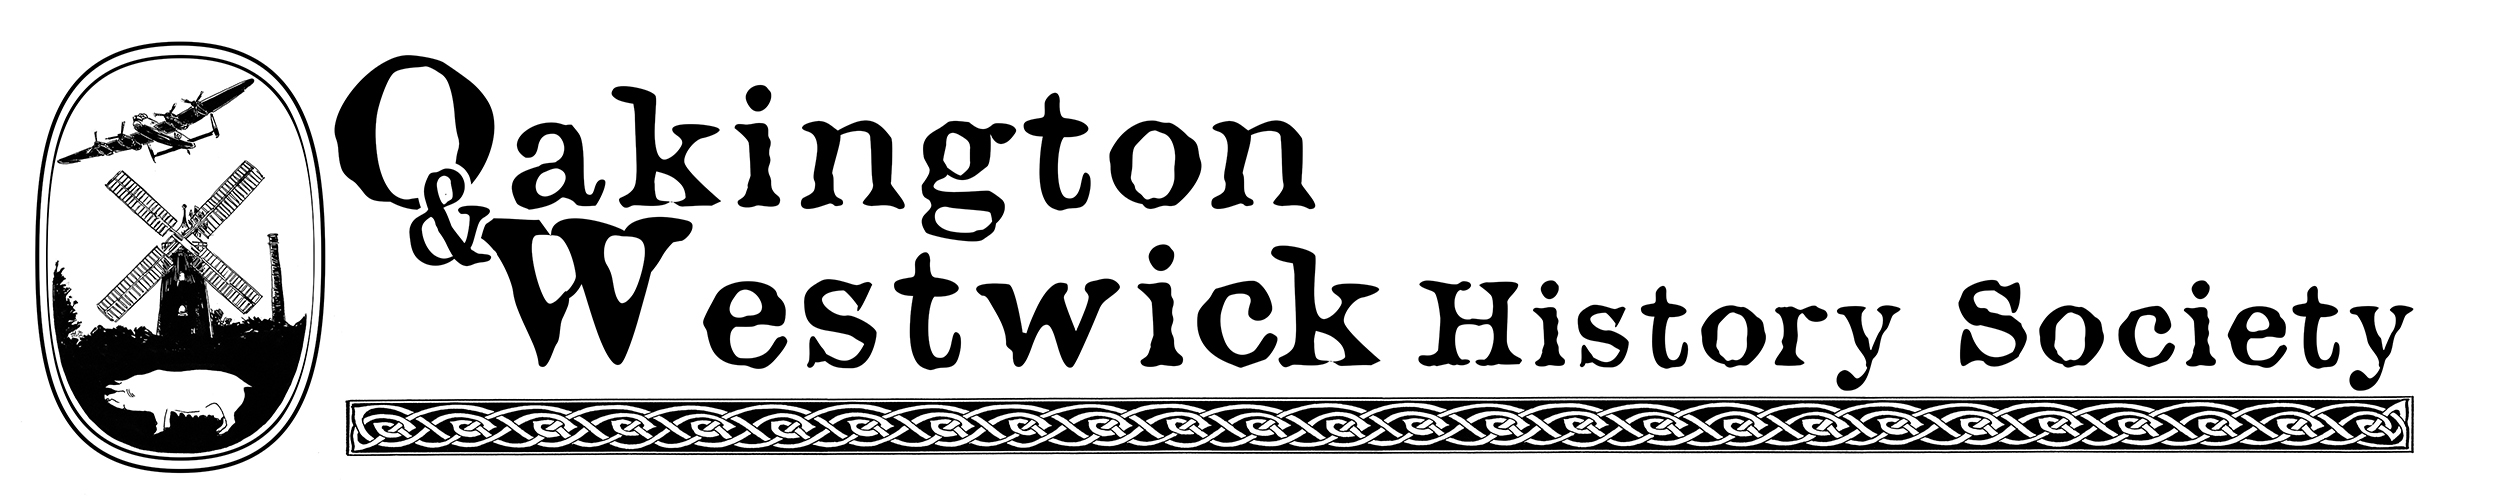 The Oakington & Westwick History Society